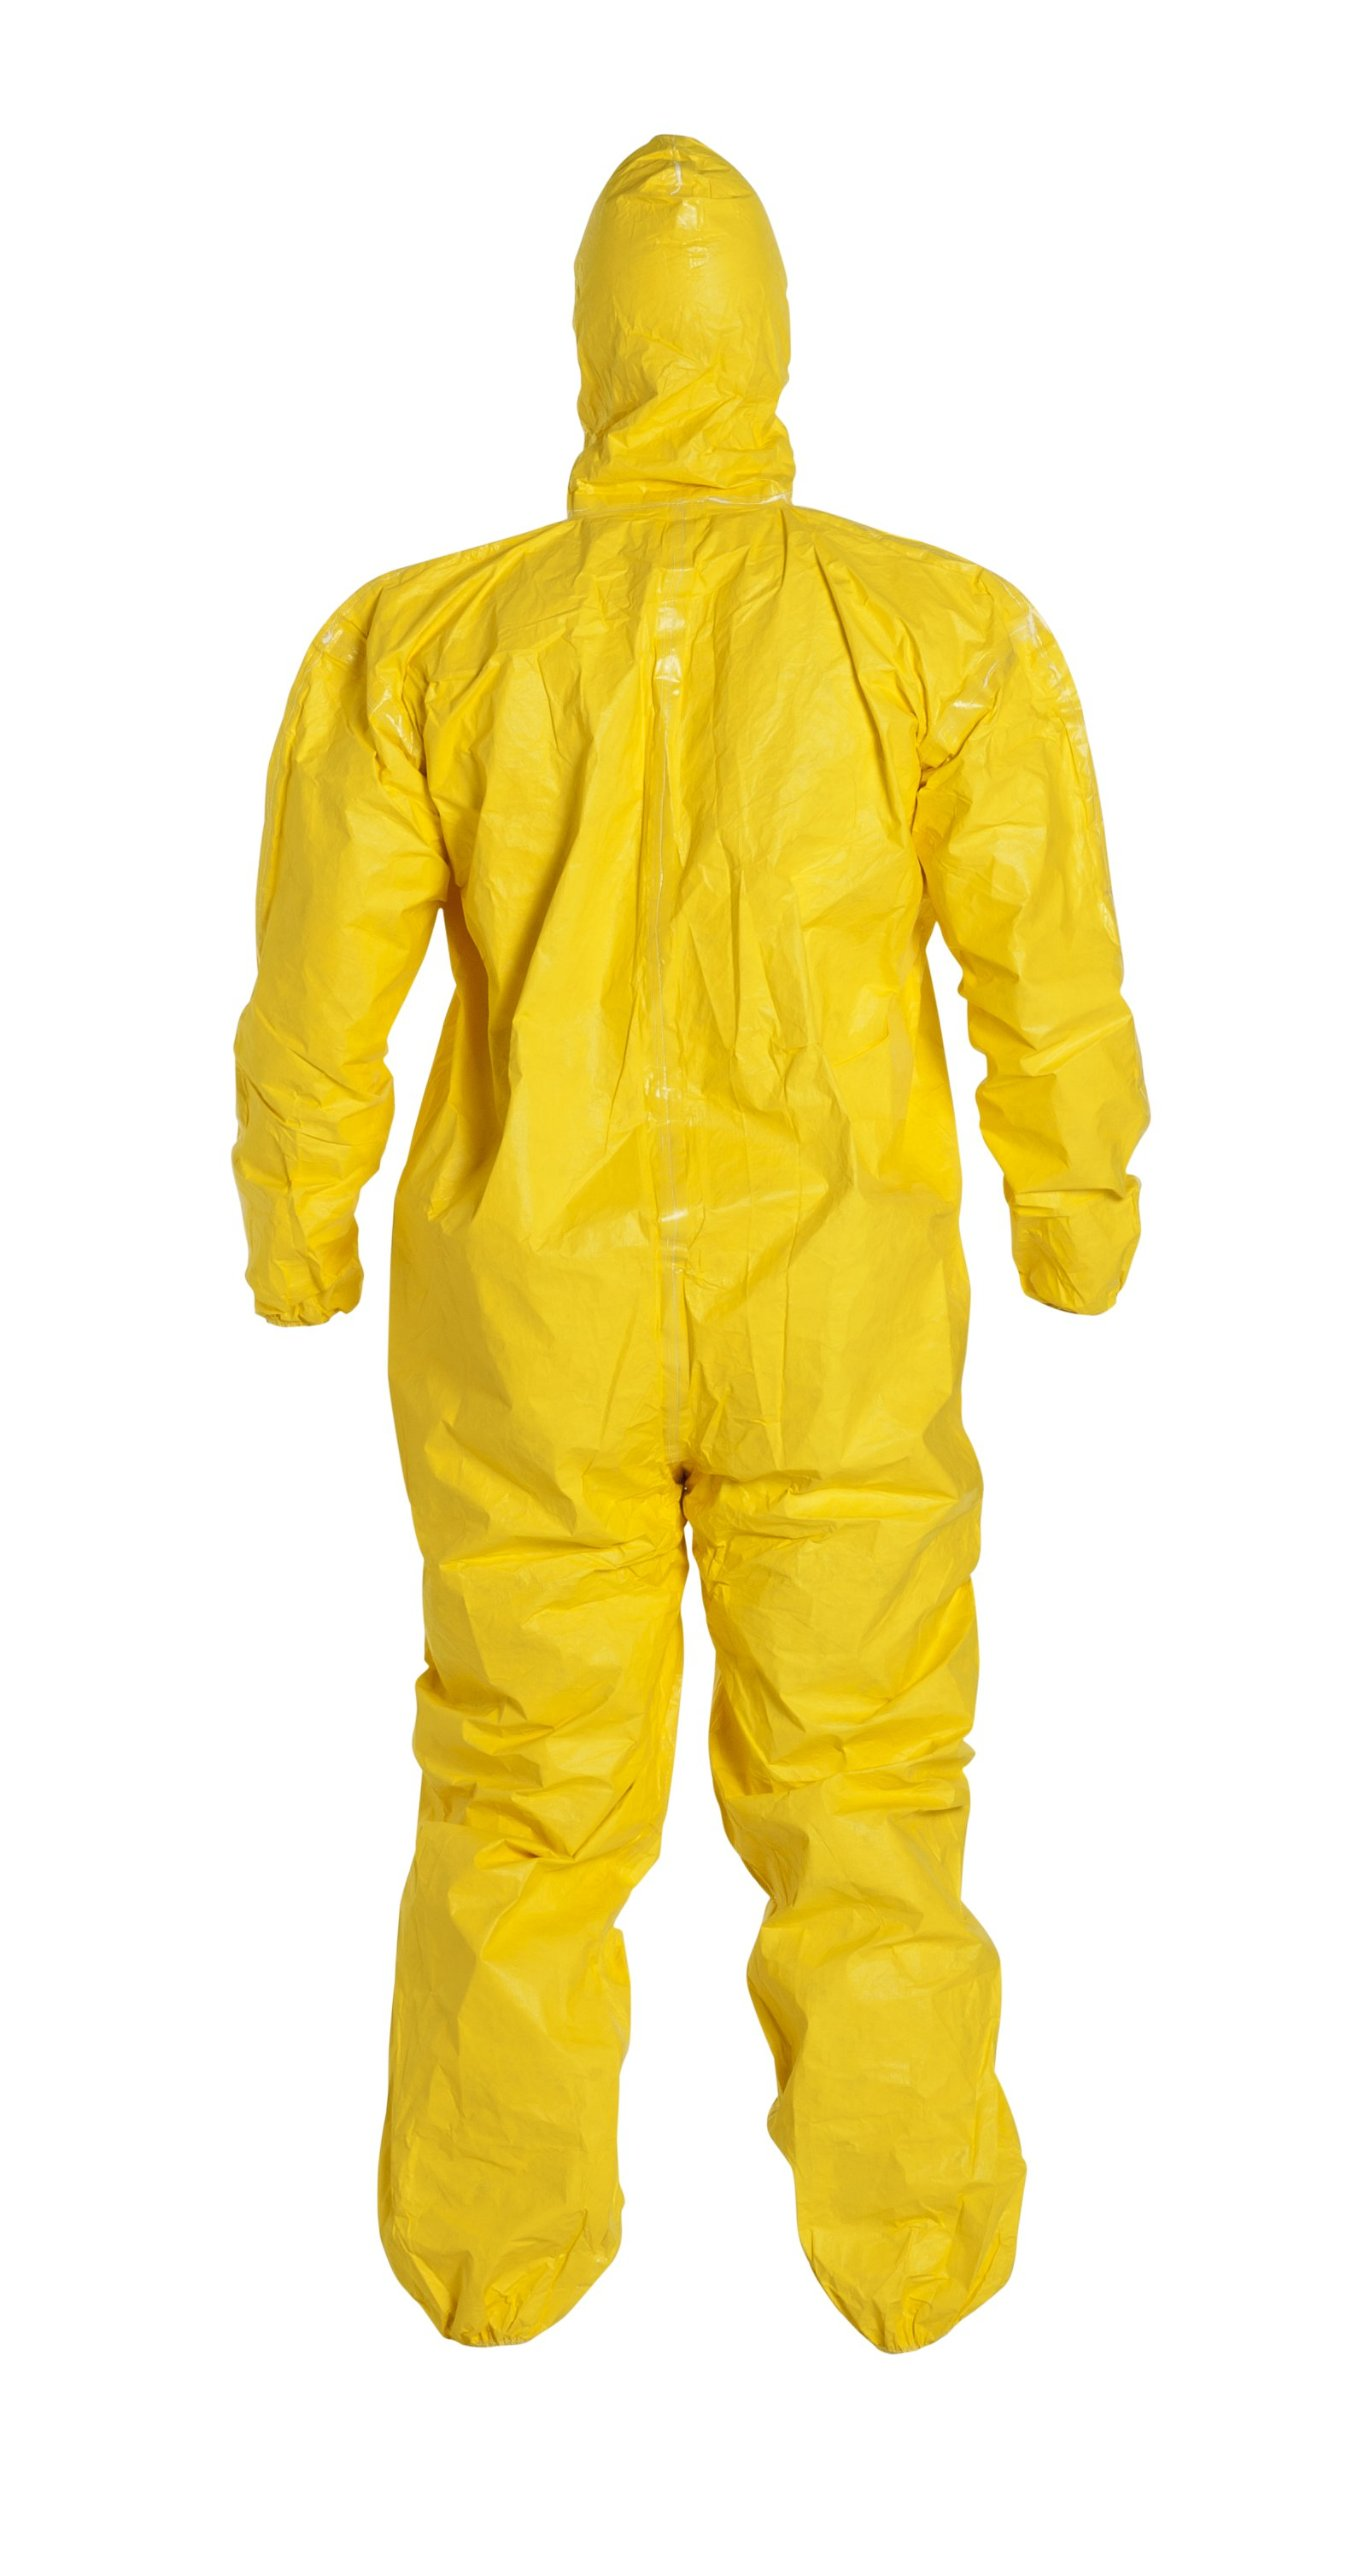 DuPont Tychem 2000 QC127S Disposable Chemical Resistant Coverall with Hood, Elastic Cuff and Serged Seams, Yellow, X-Large (Pack of 12) by DuPont (Image #4)